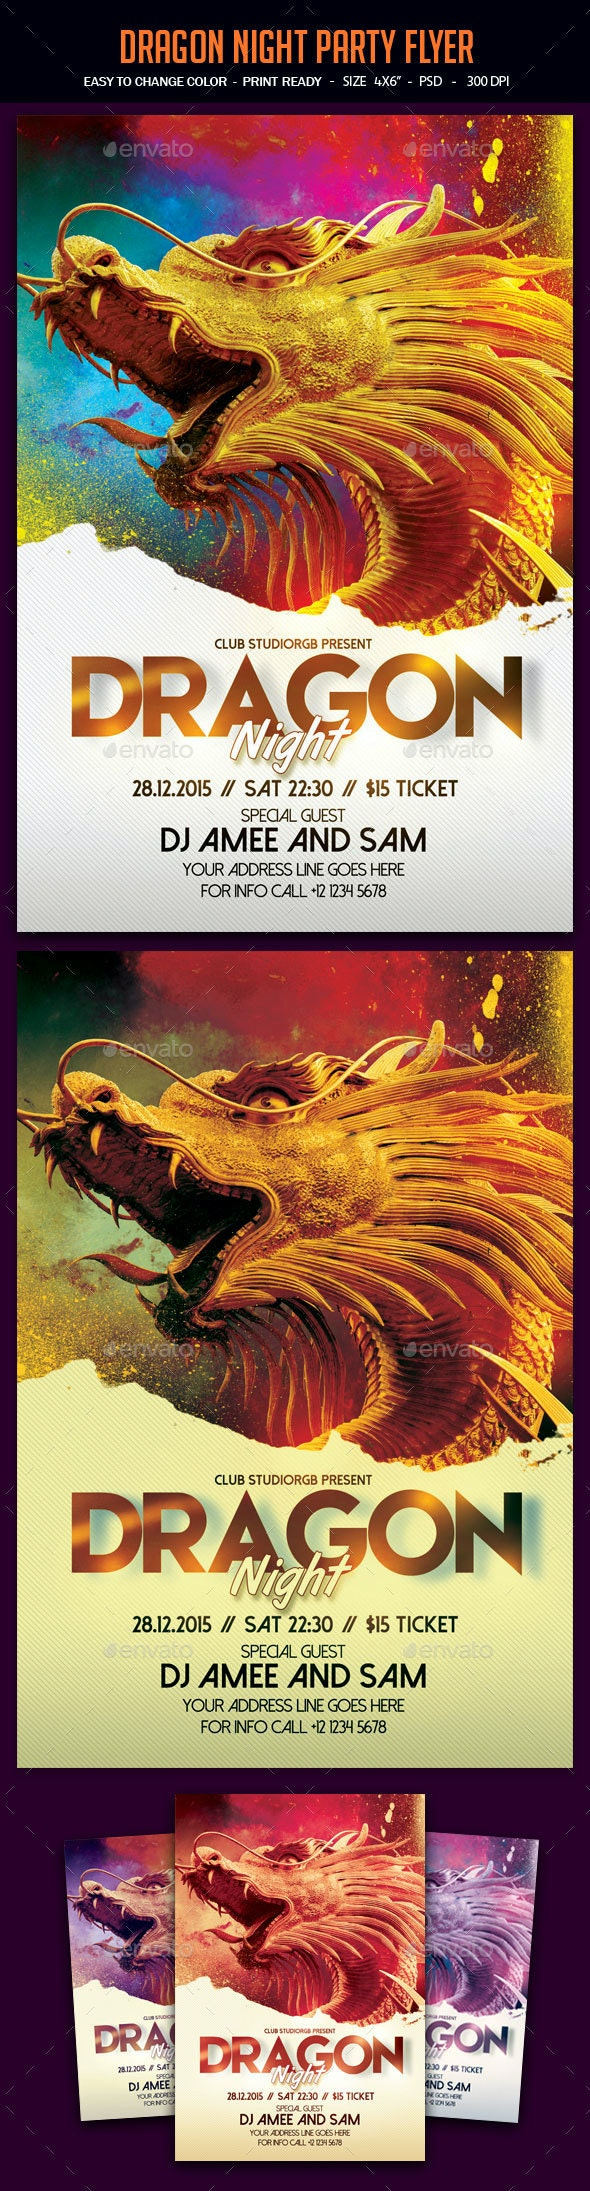 Dragon Night Party Flyer - Clubs & Parties Events